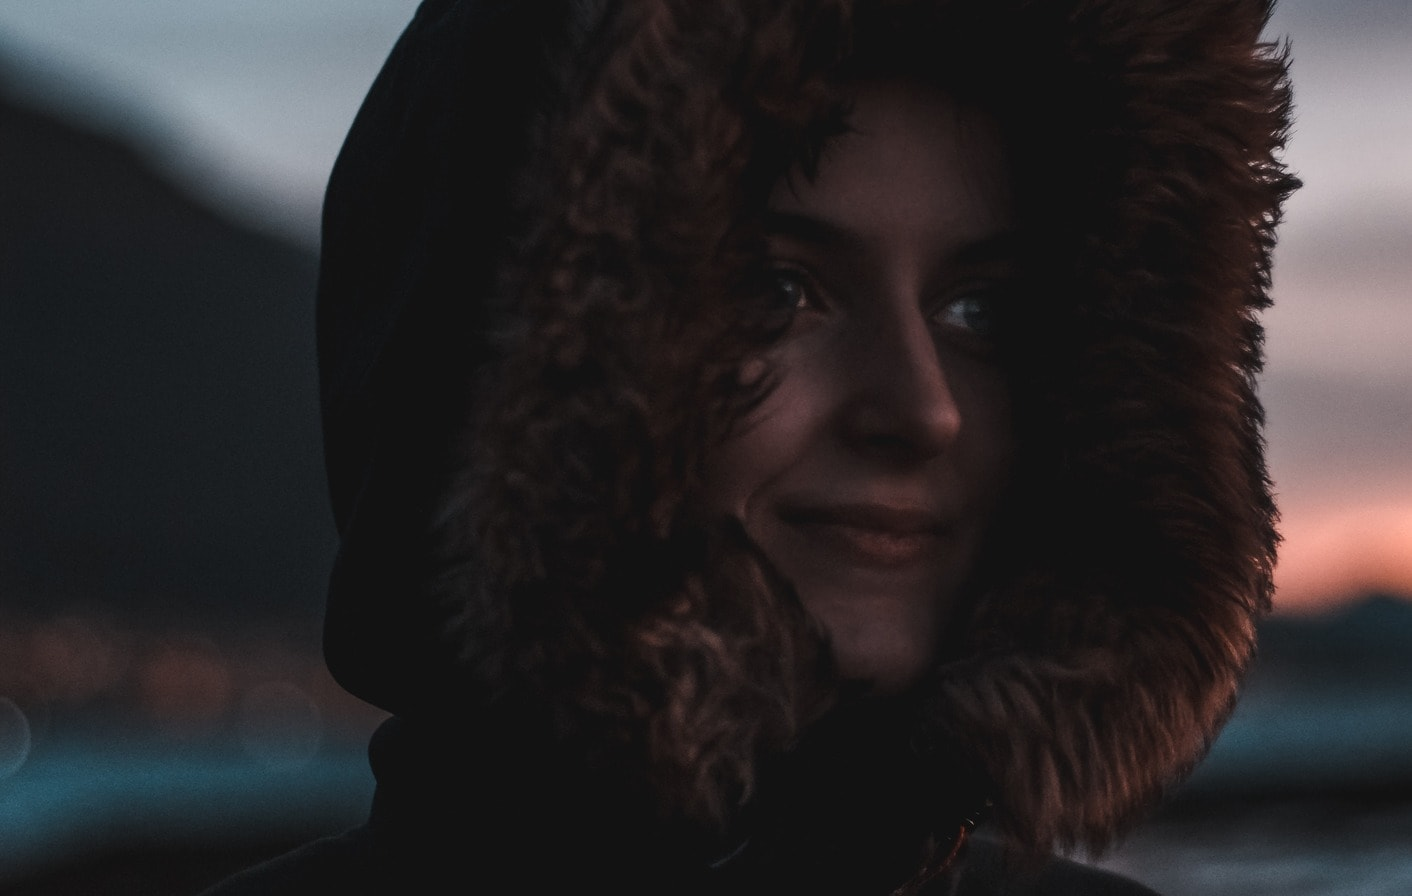 close up of a young woman smiling while wearing a parka coat with her hood up at night